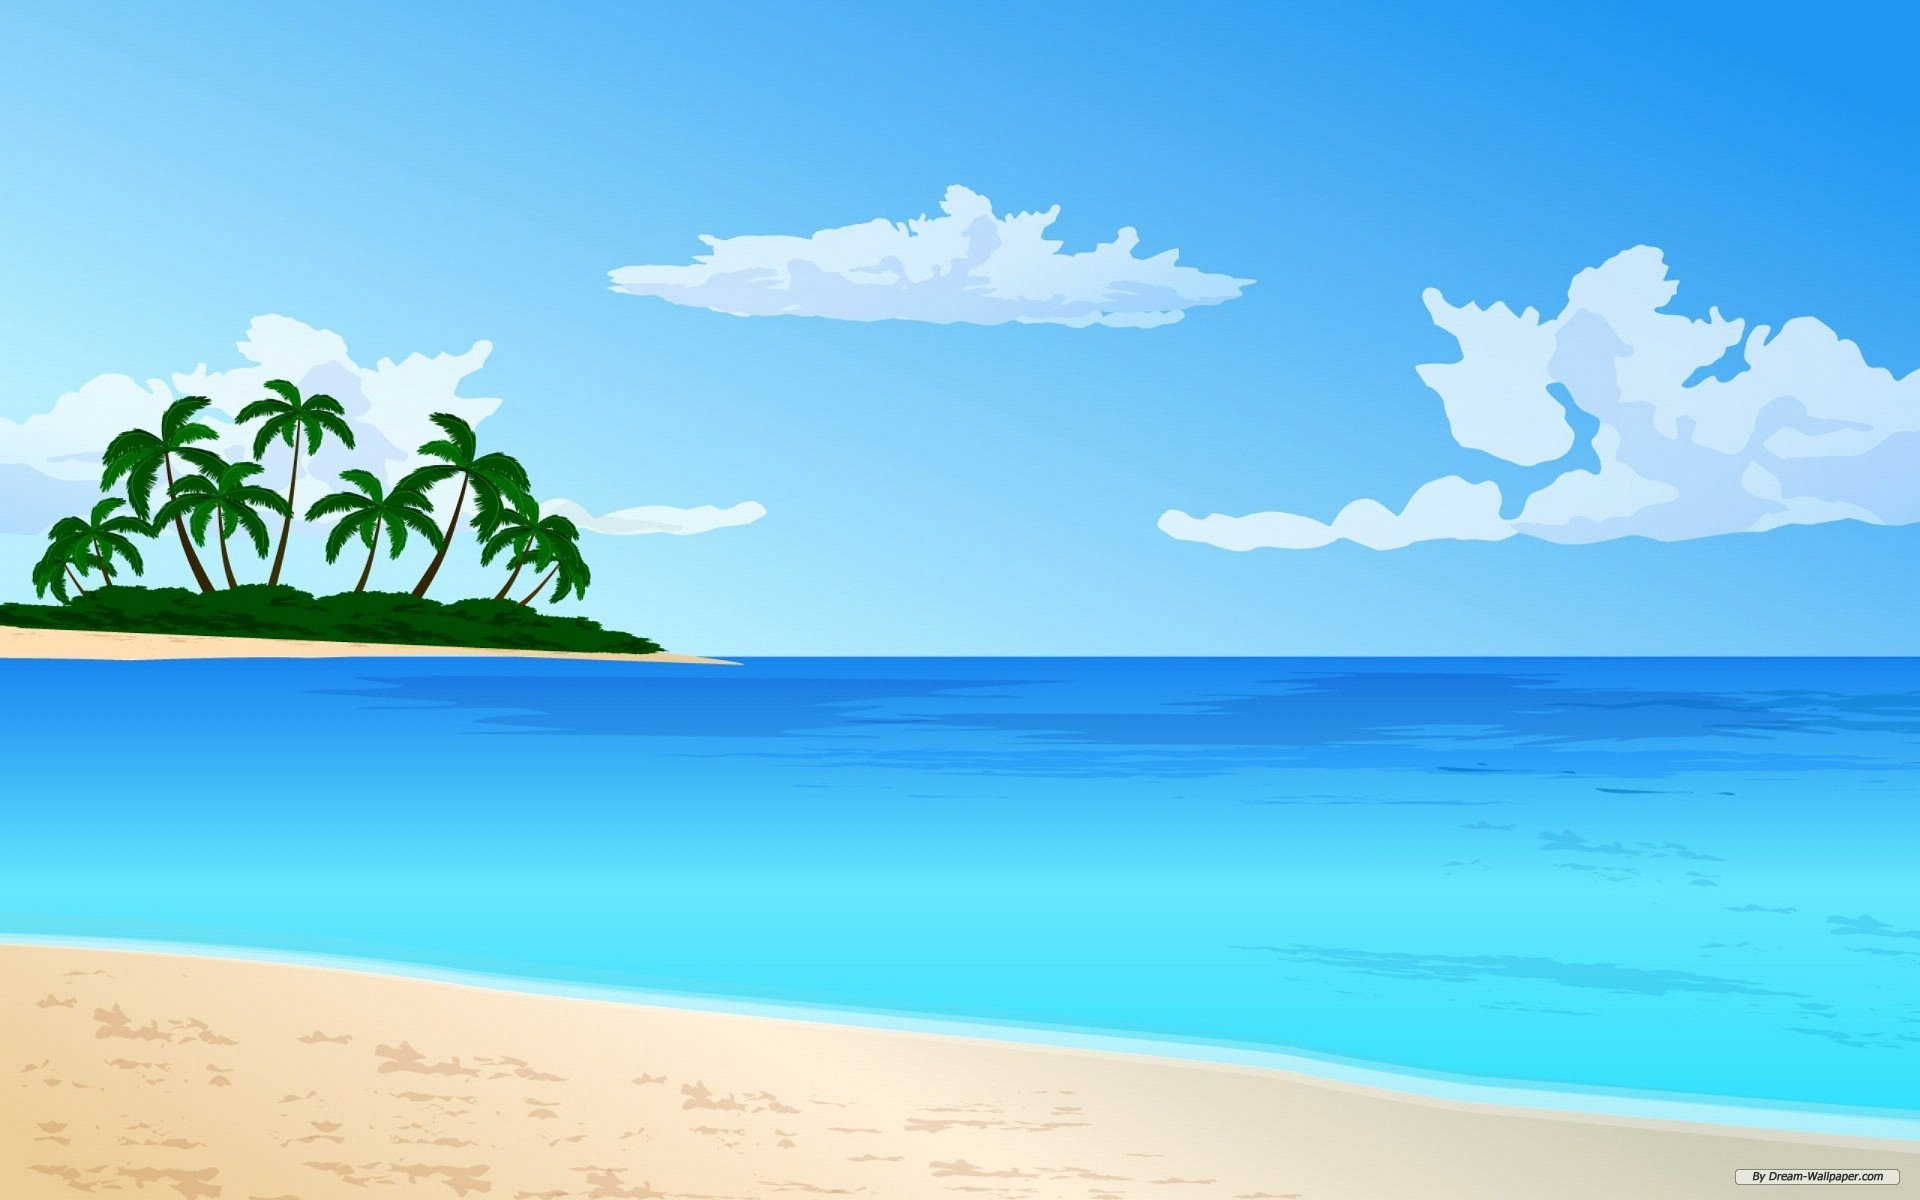 sky coloring pages - Ocean clipart beach water